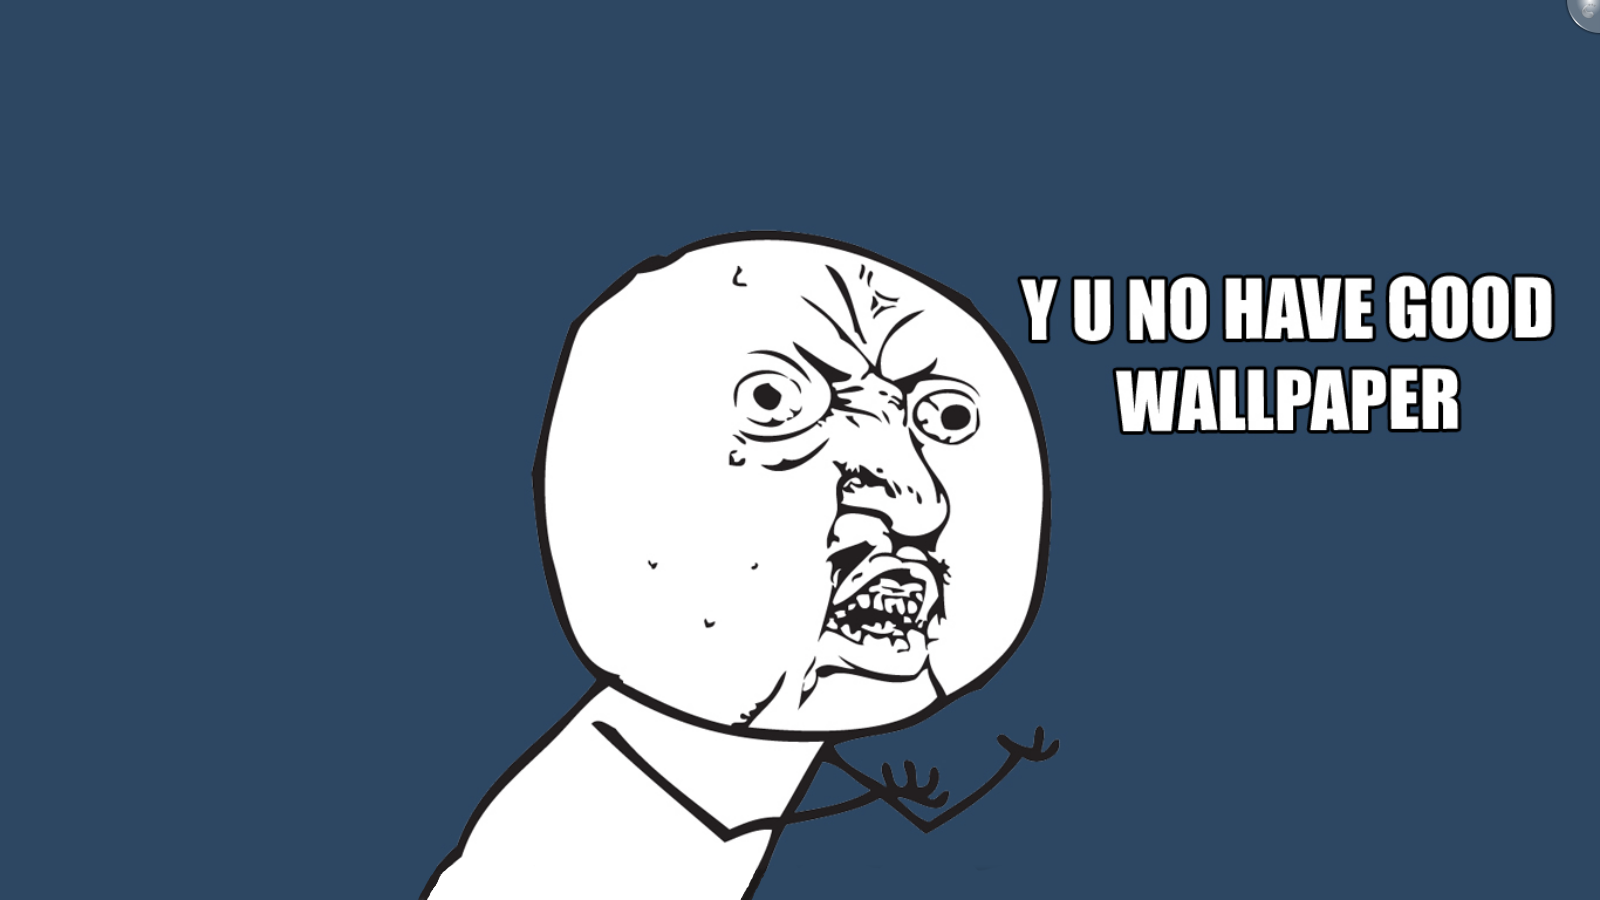 Funny Meme Wallpapers Images amp Pictures   Becuo 1600x900